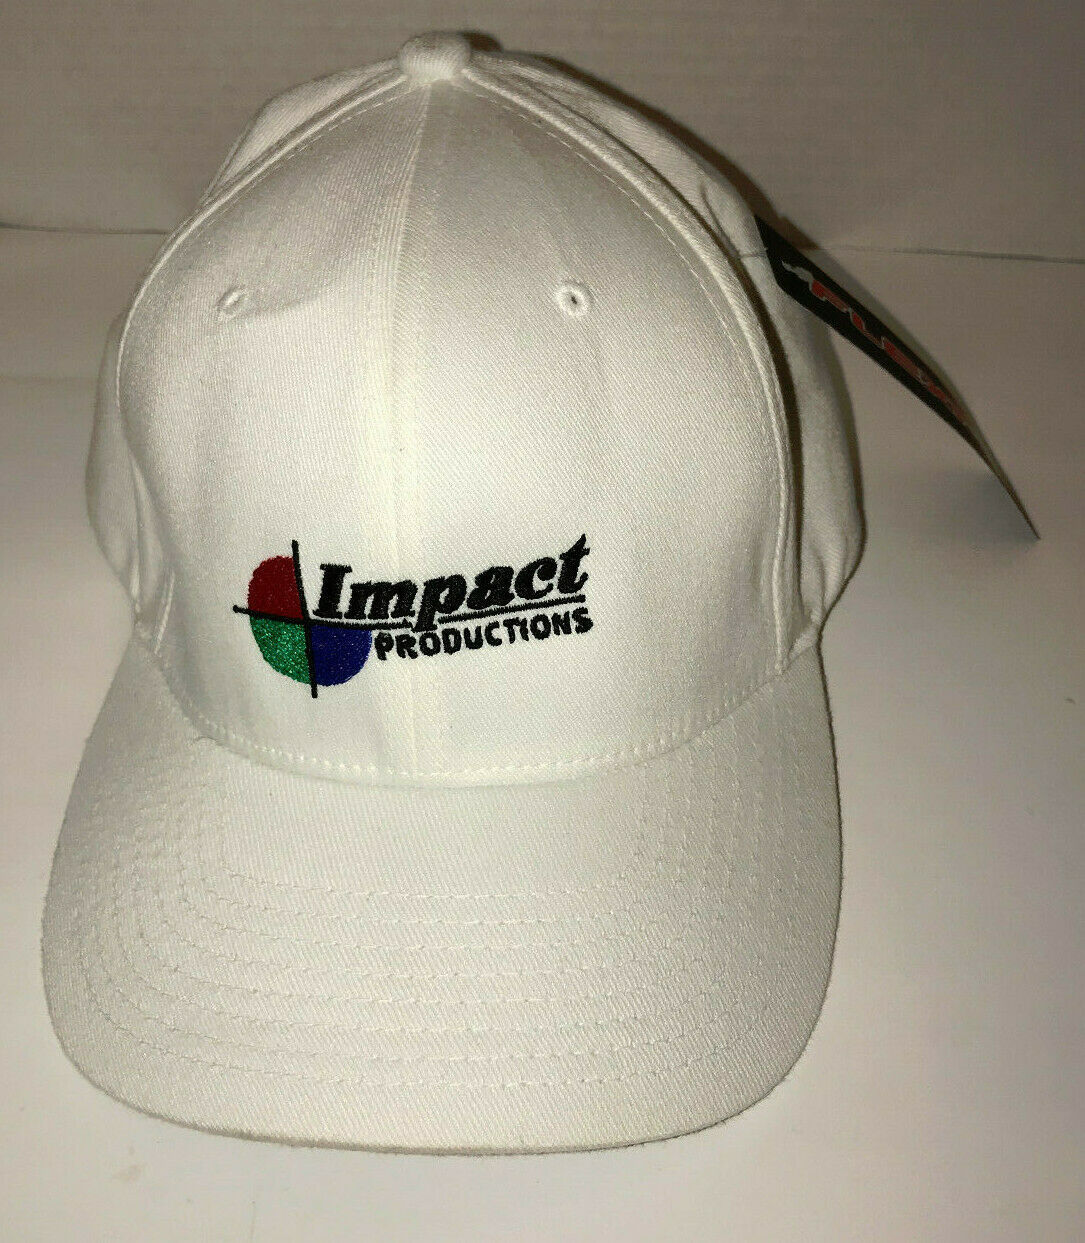 Primary image for Impact Productions White Flex Fit Hat NWT L-XL Polyester